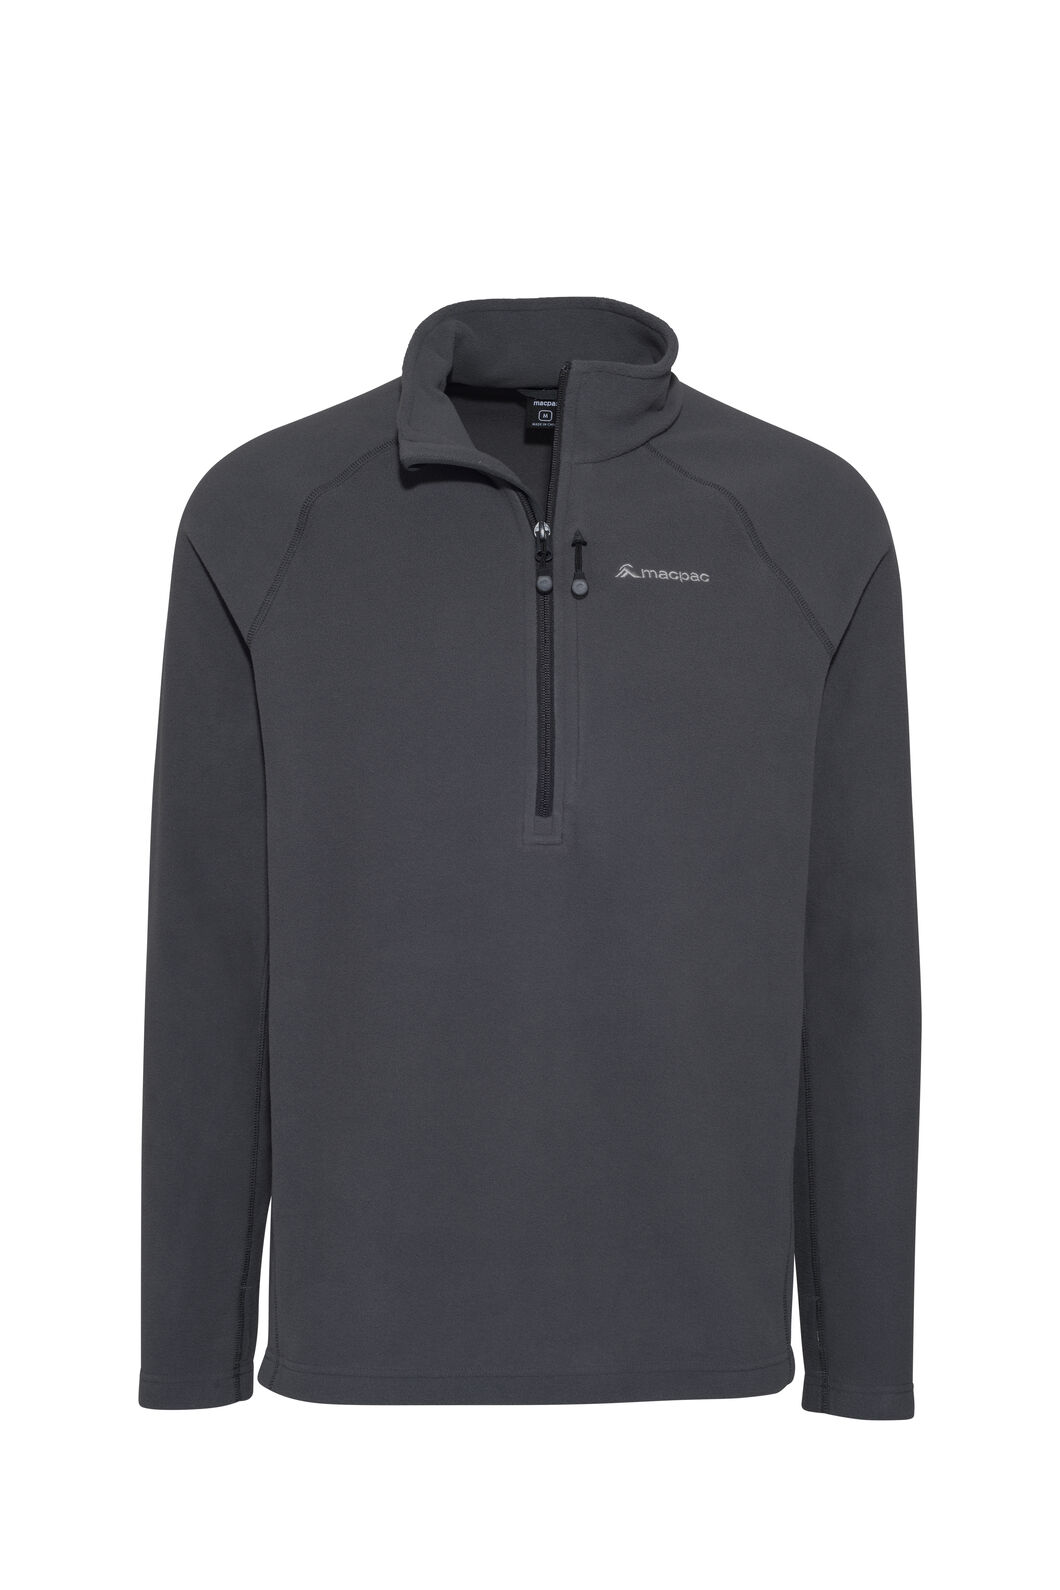 Macpac Tui Polartec® Micro Fleece® Pullover — Men's, Iron Gate, hi-res